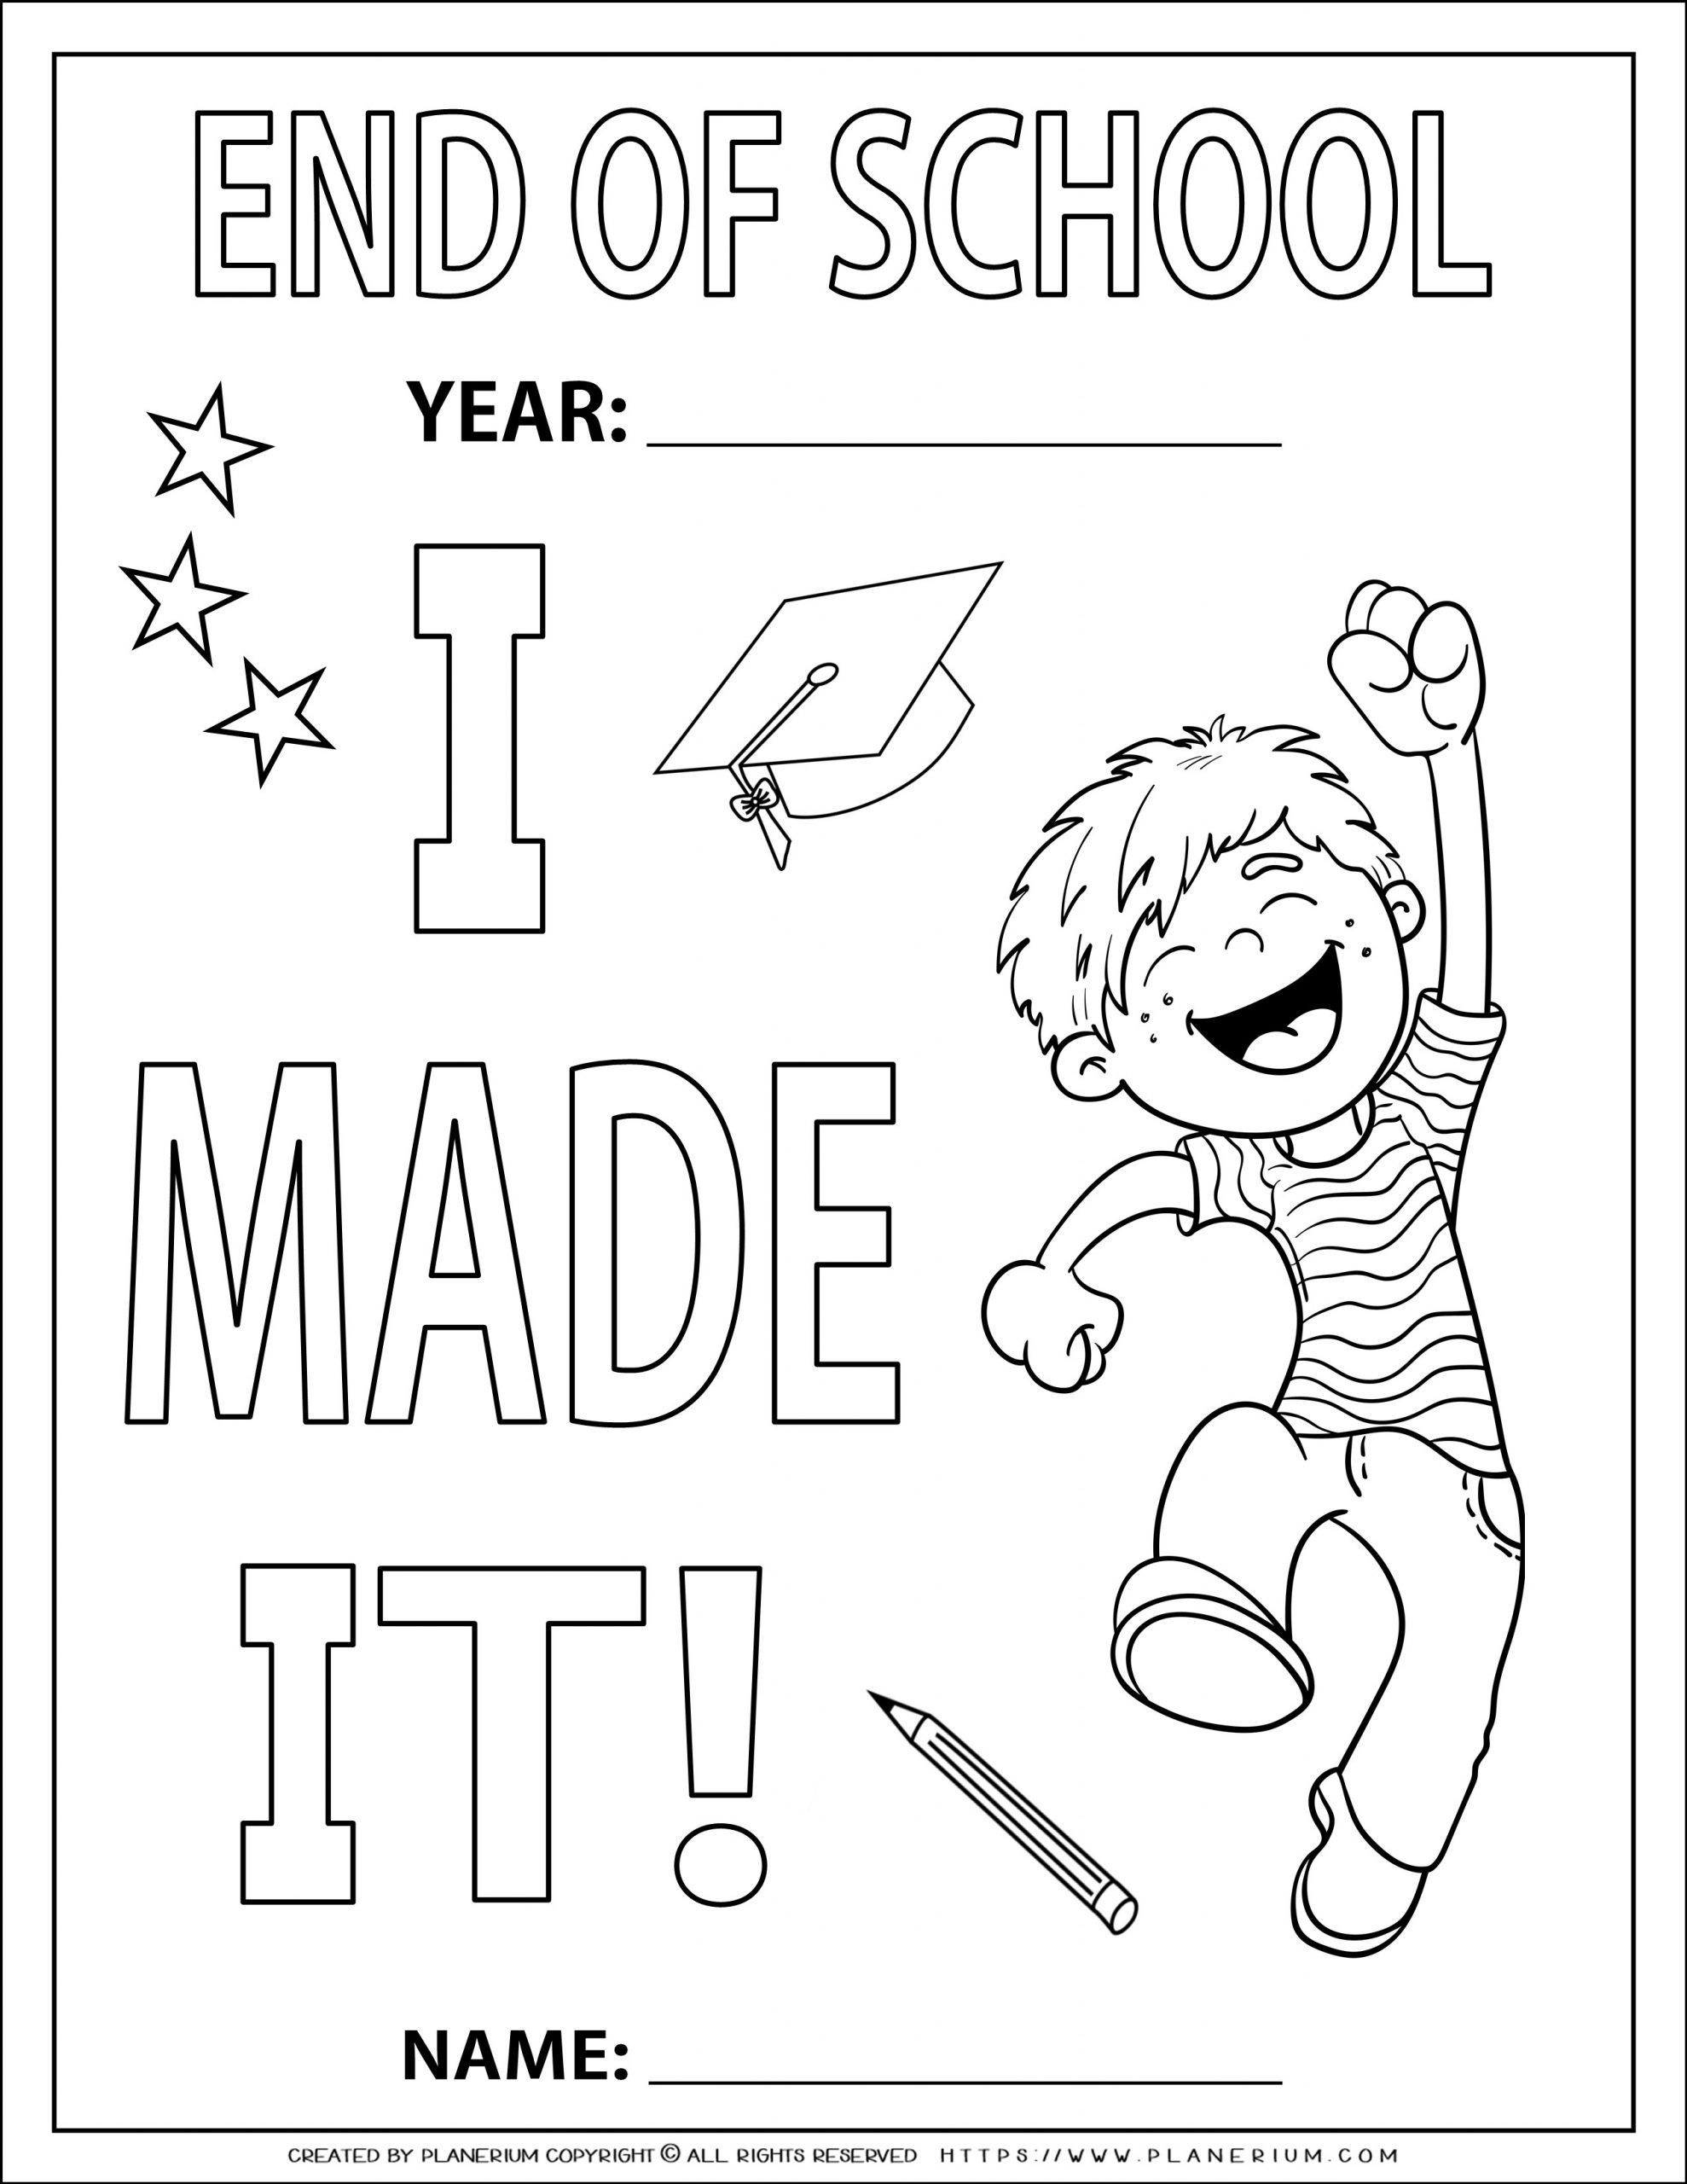 End Of Year Coloring Page I Made It For A Boy Planerium End Of Year End Of School Year Coloring Pages [ 2560 x 1978 Pixel ]